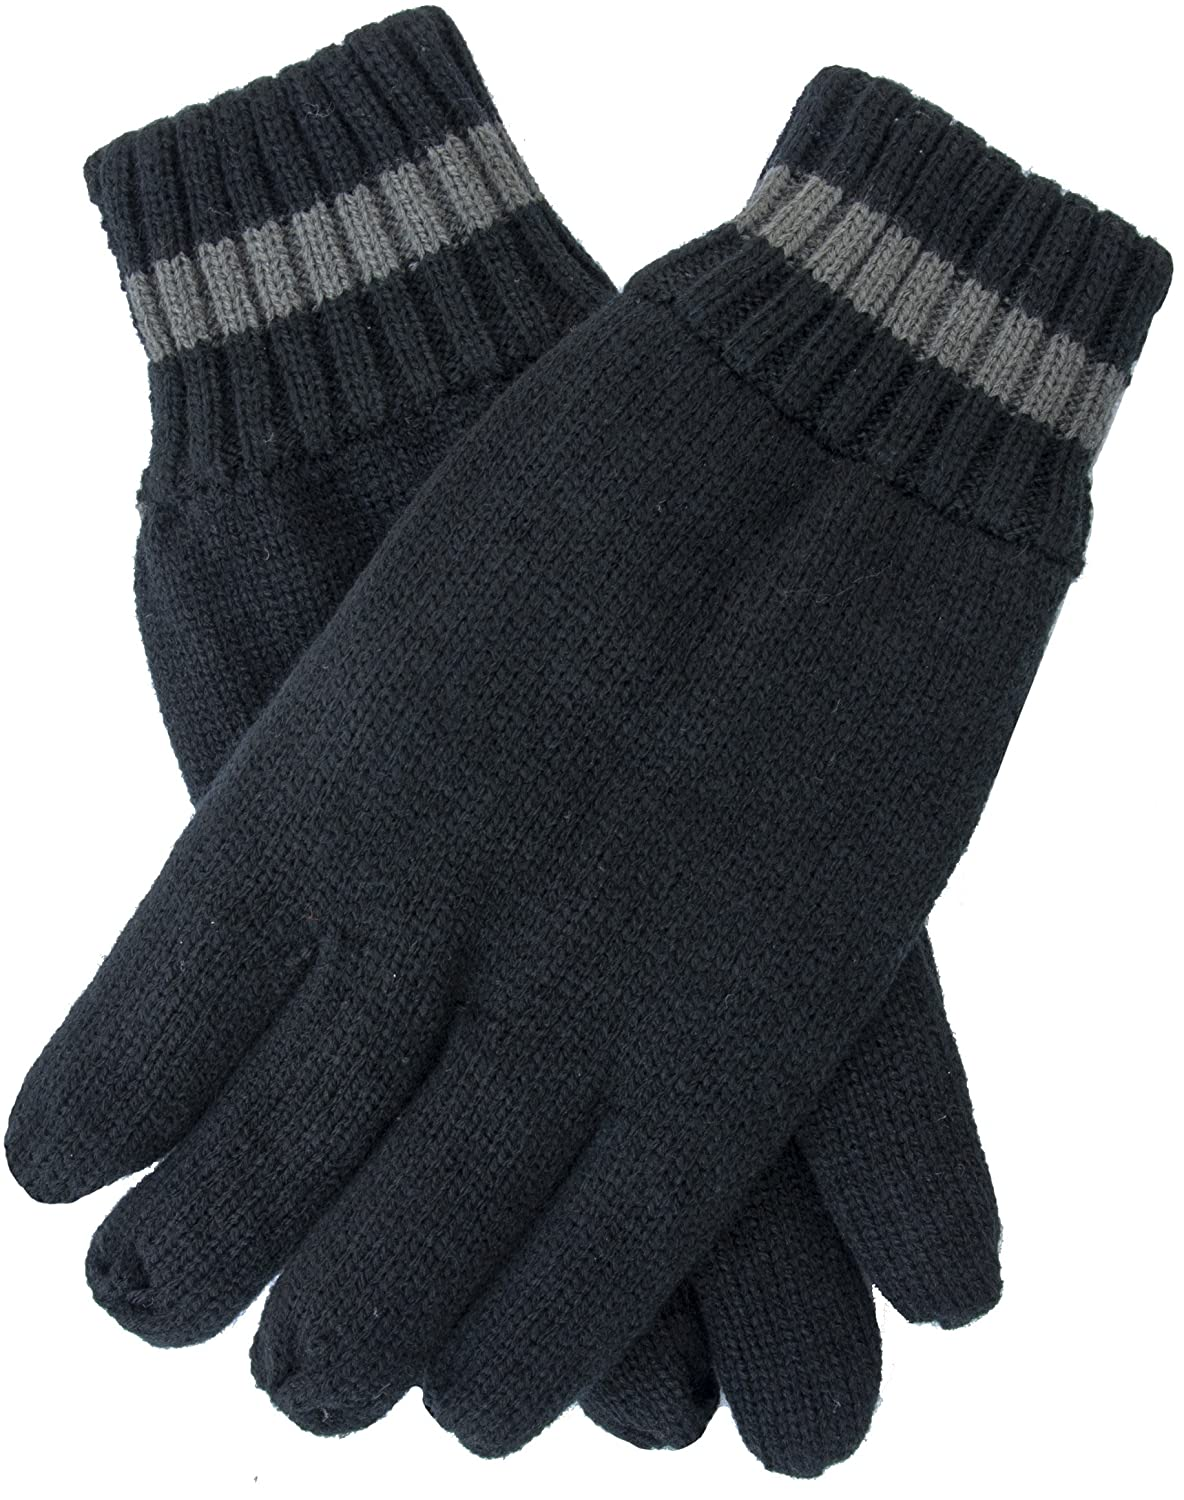 EEM Big Men's knitted glove TOM, with thermal lining, warm, winter, black XL 2889M-SZXL